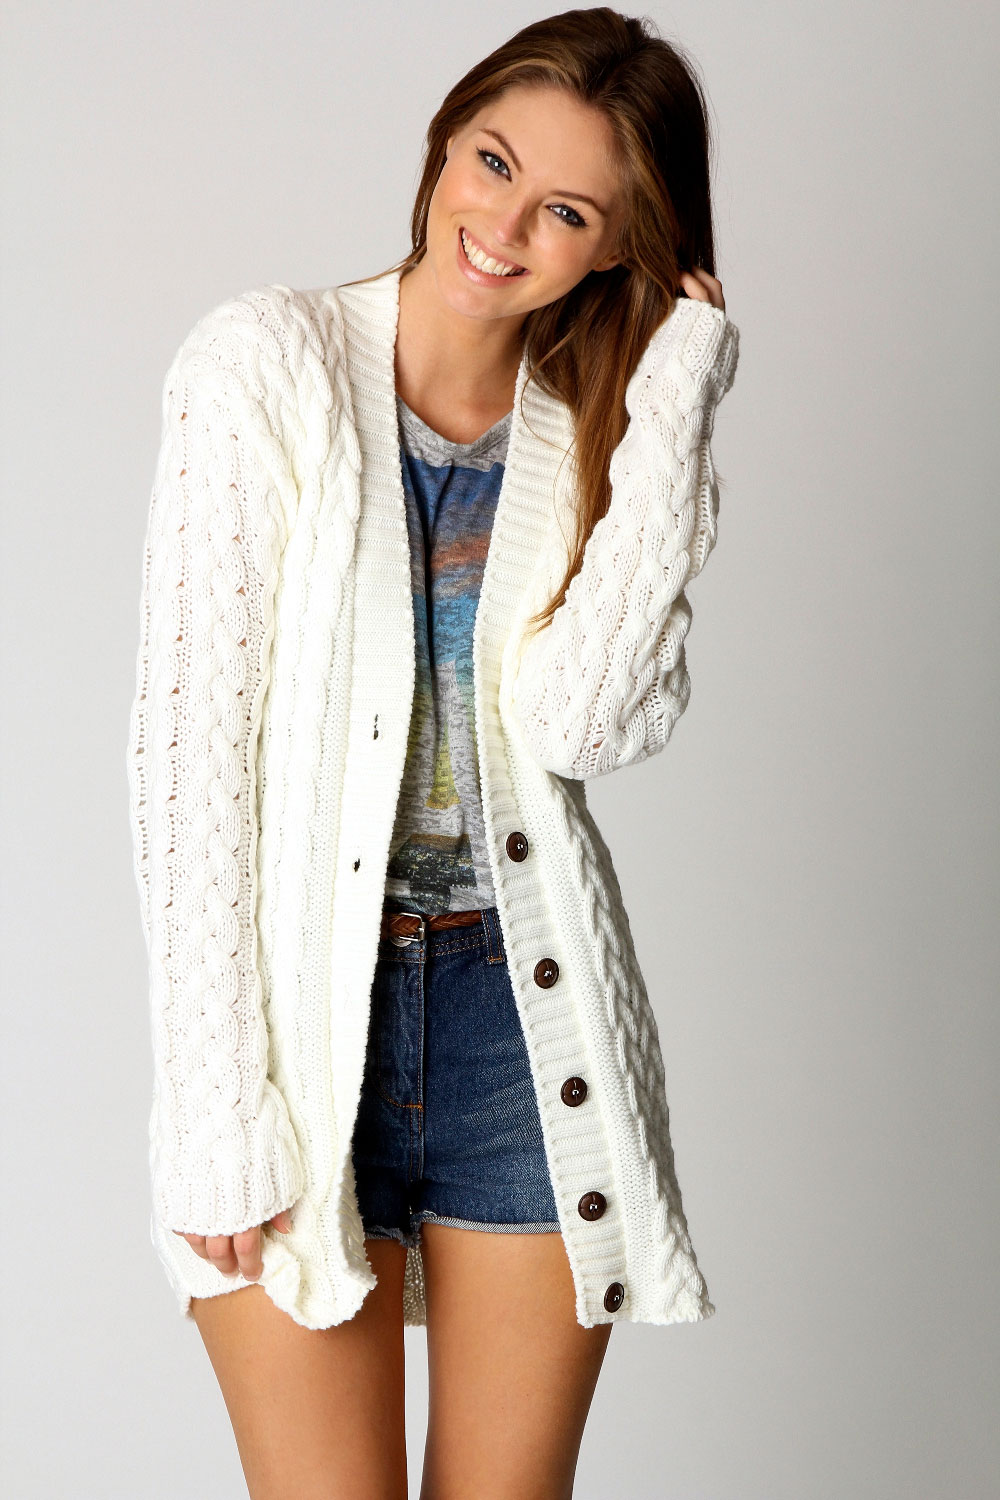 Long Cream Cable Knit Sweater - Cardigan With Buttons